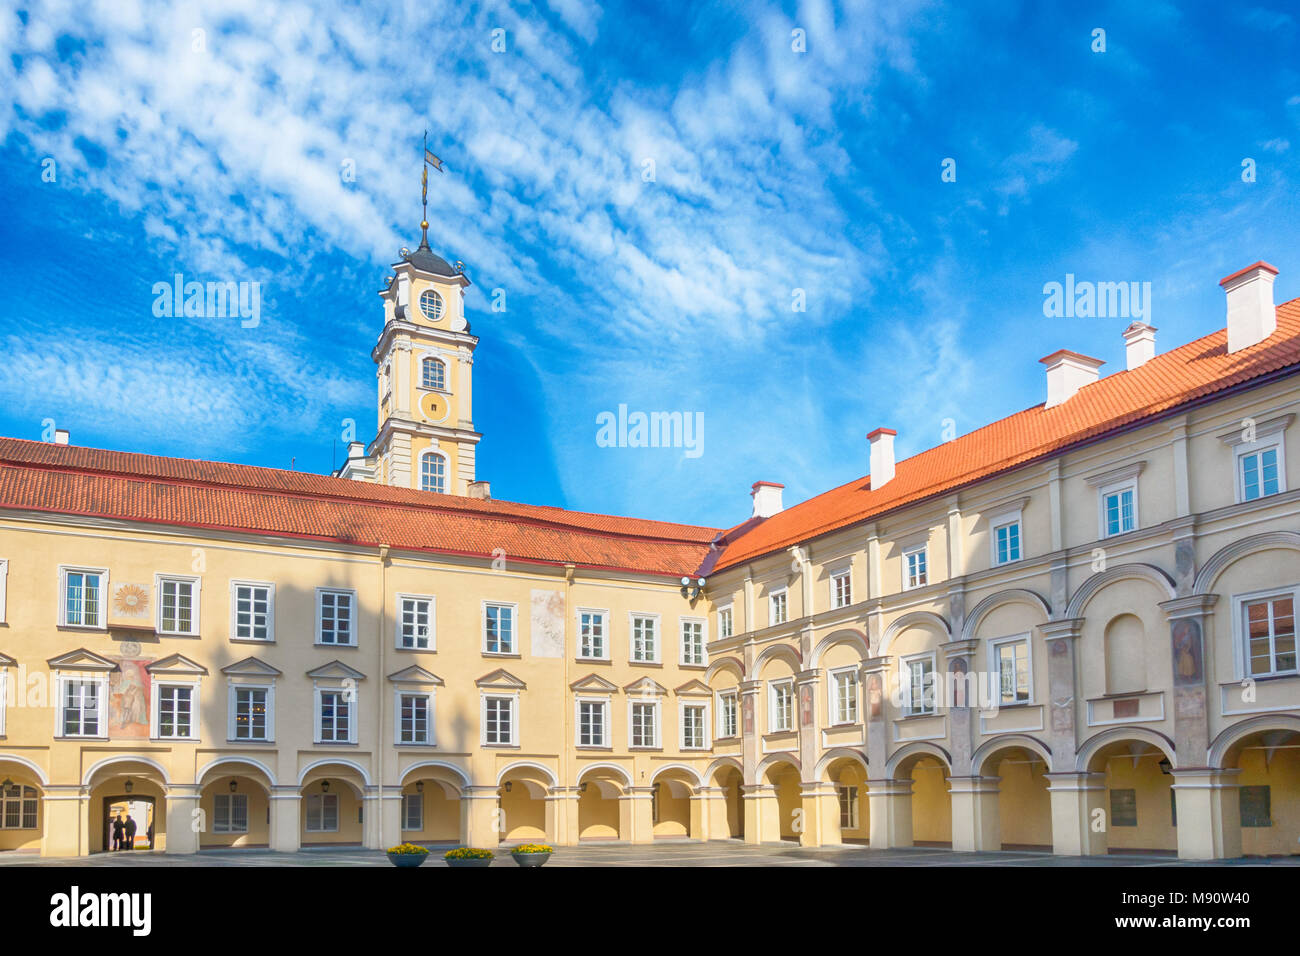 Vilnius University Courtyard and Observatory tower. Vilnius, Lithuania Stock Photo